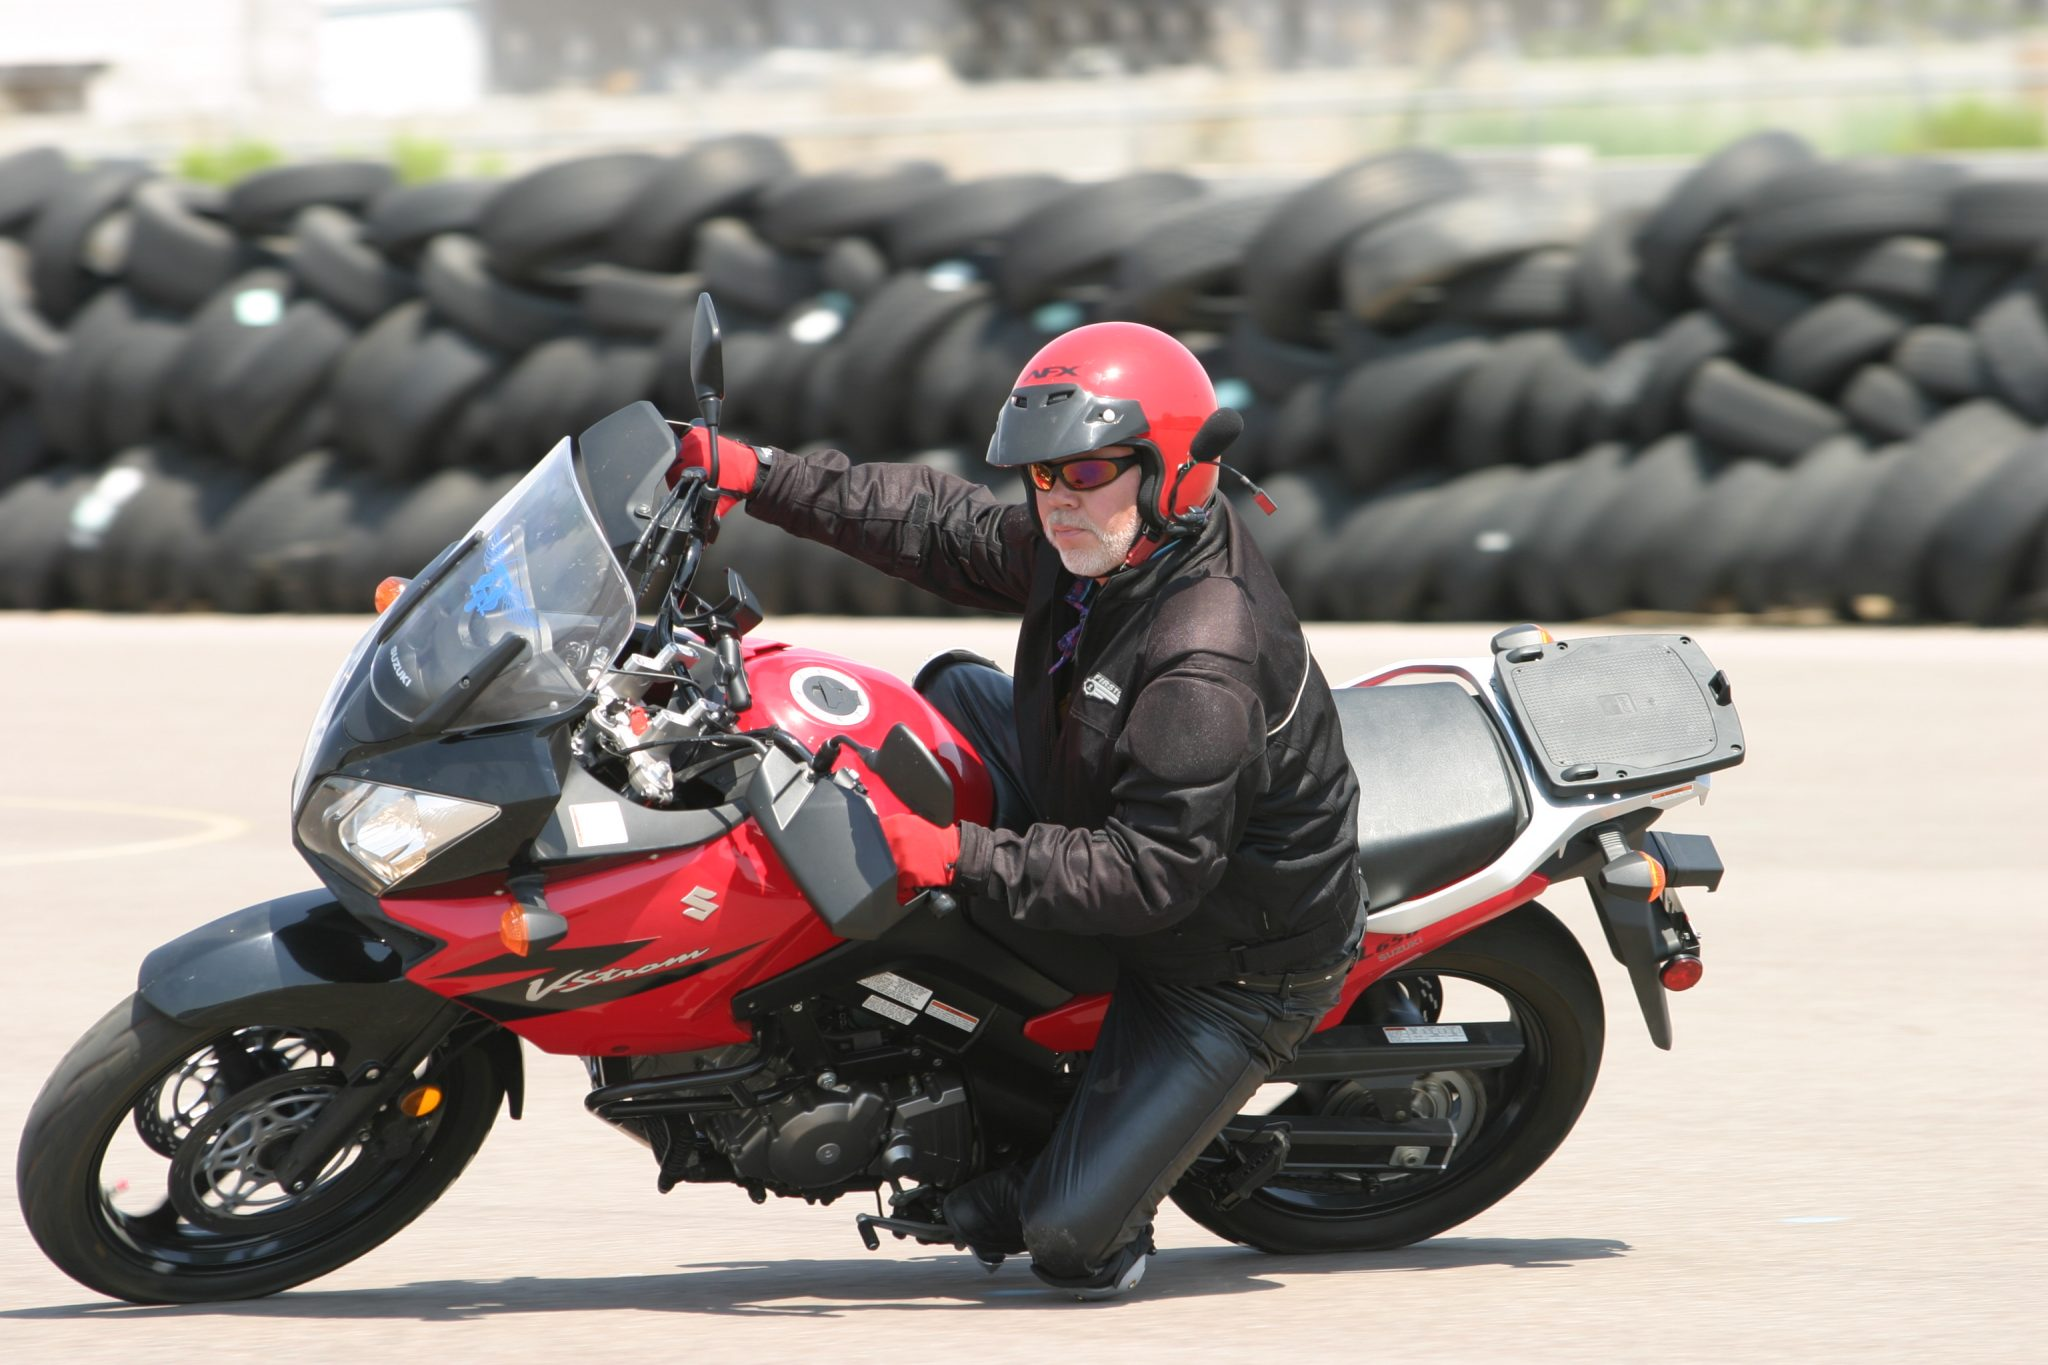 man riding motorcycle on a track